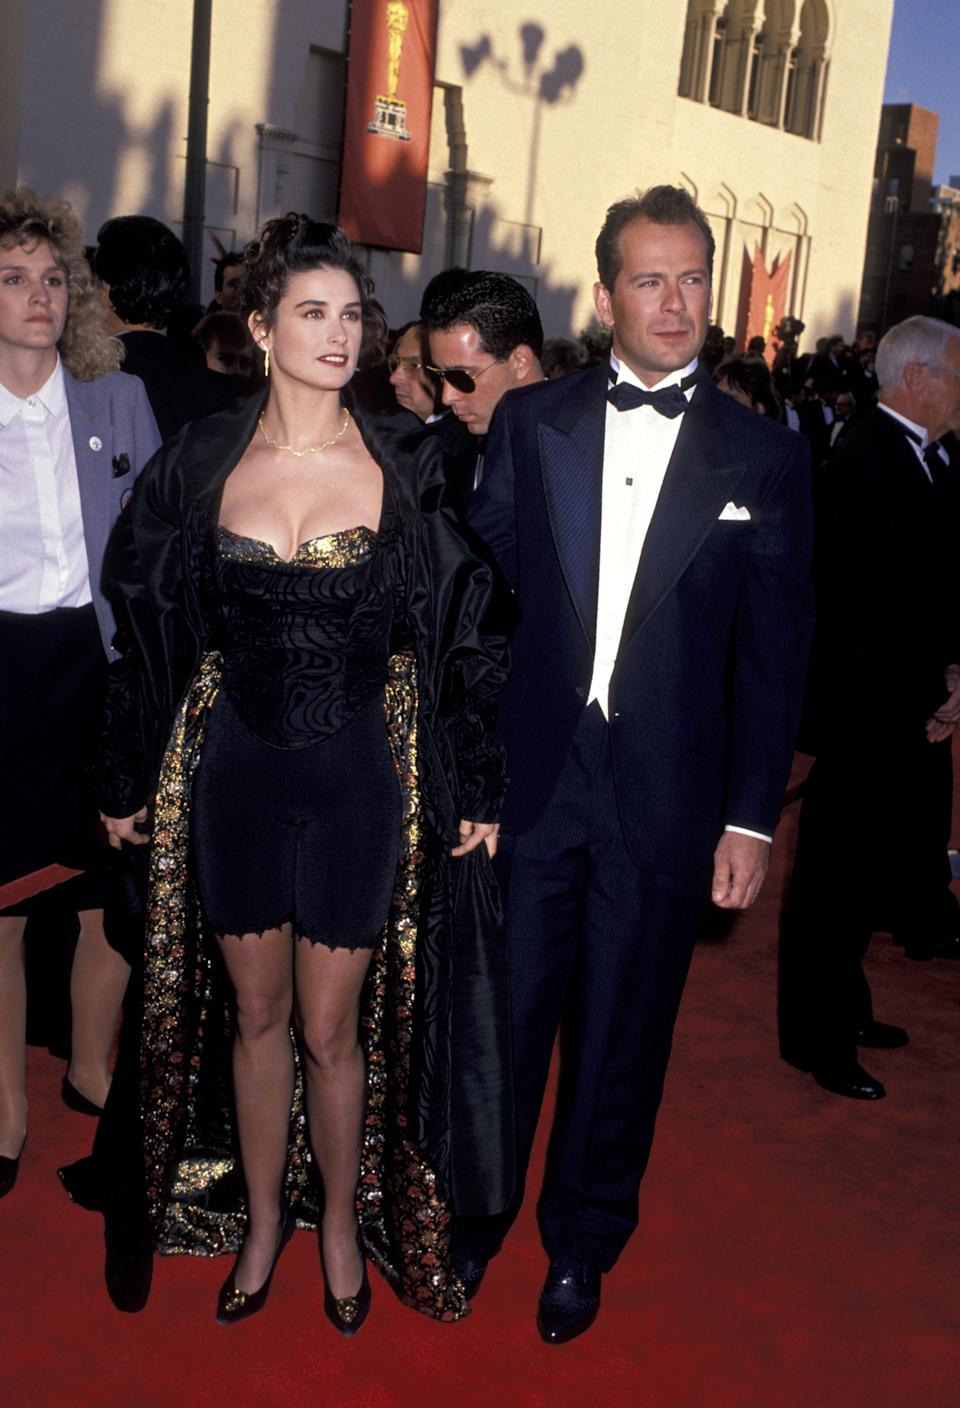 <p>Back in 1989, Moore decided to take matters into her own hands and fashion a look for the biggest red carpet in Hollywood herself. The actress paired a pair of spandex bicycle shorts with a corset and gold brocade fabric.</p>